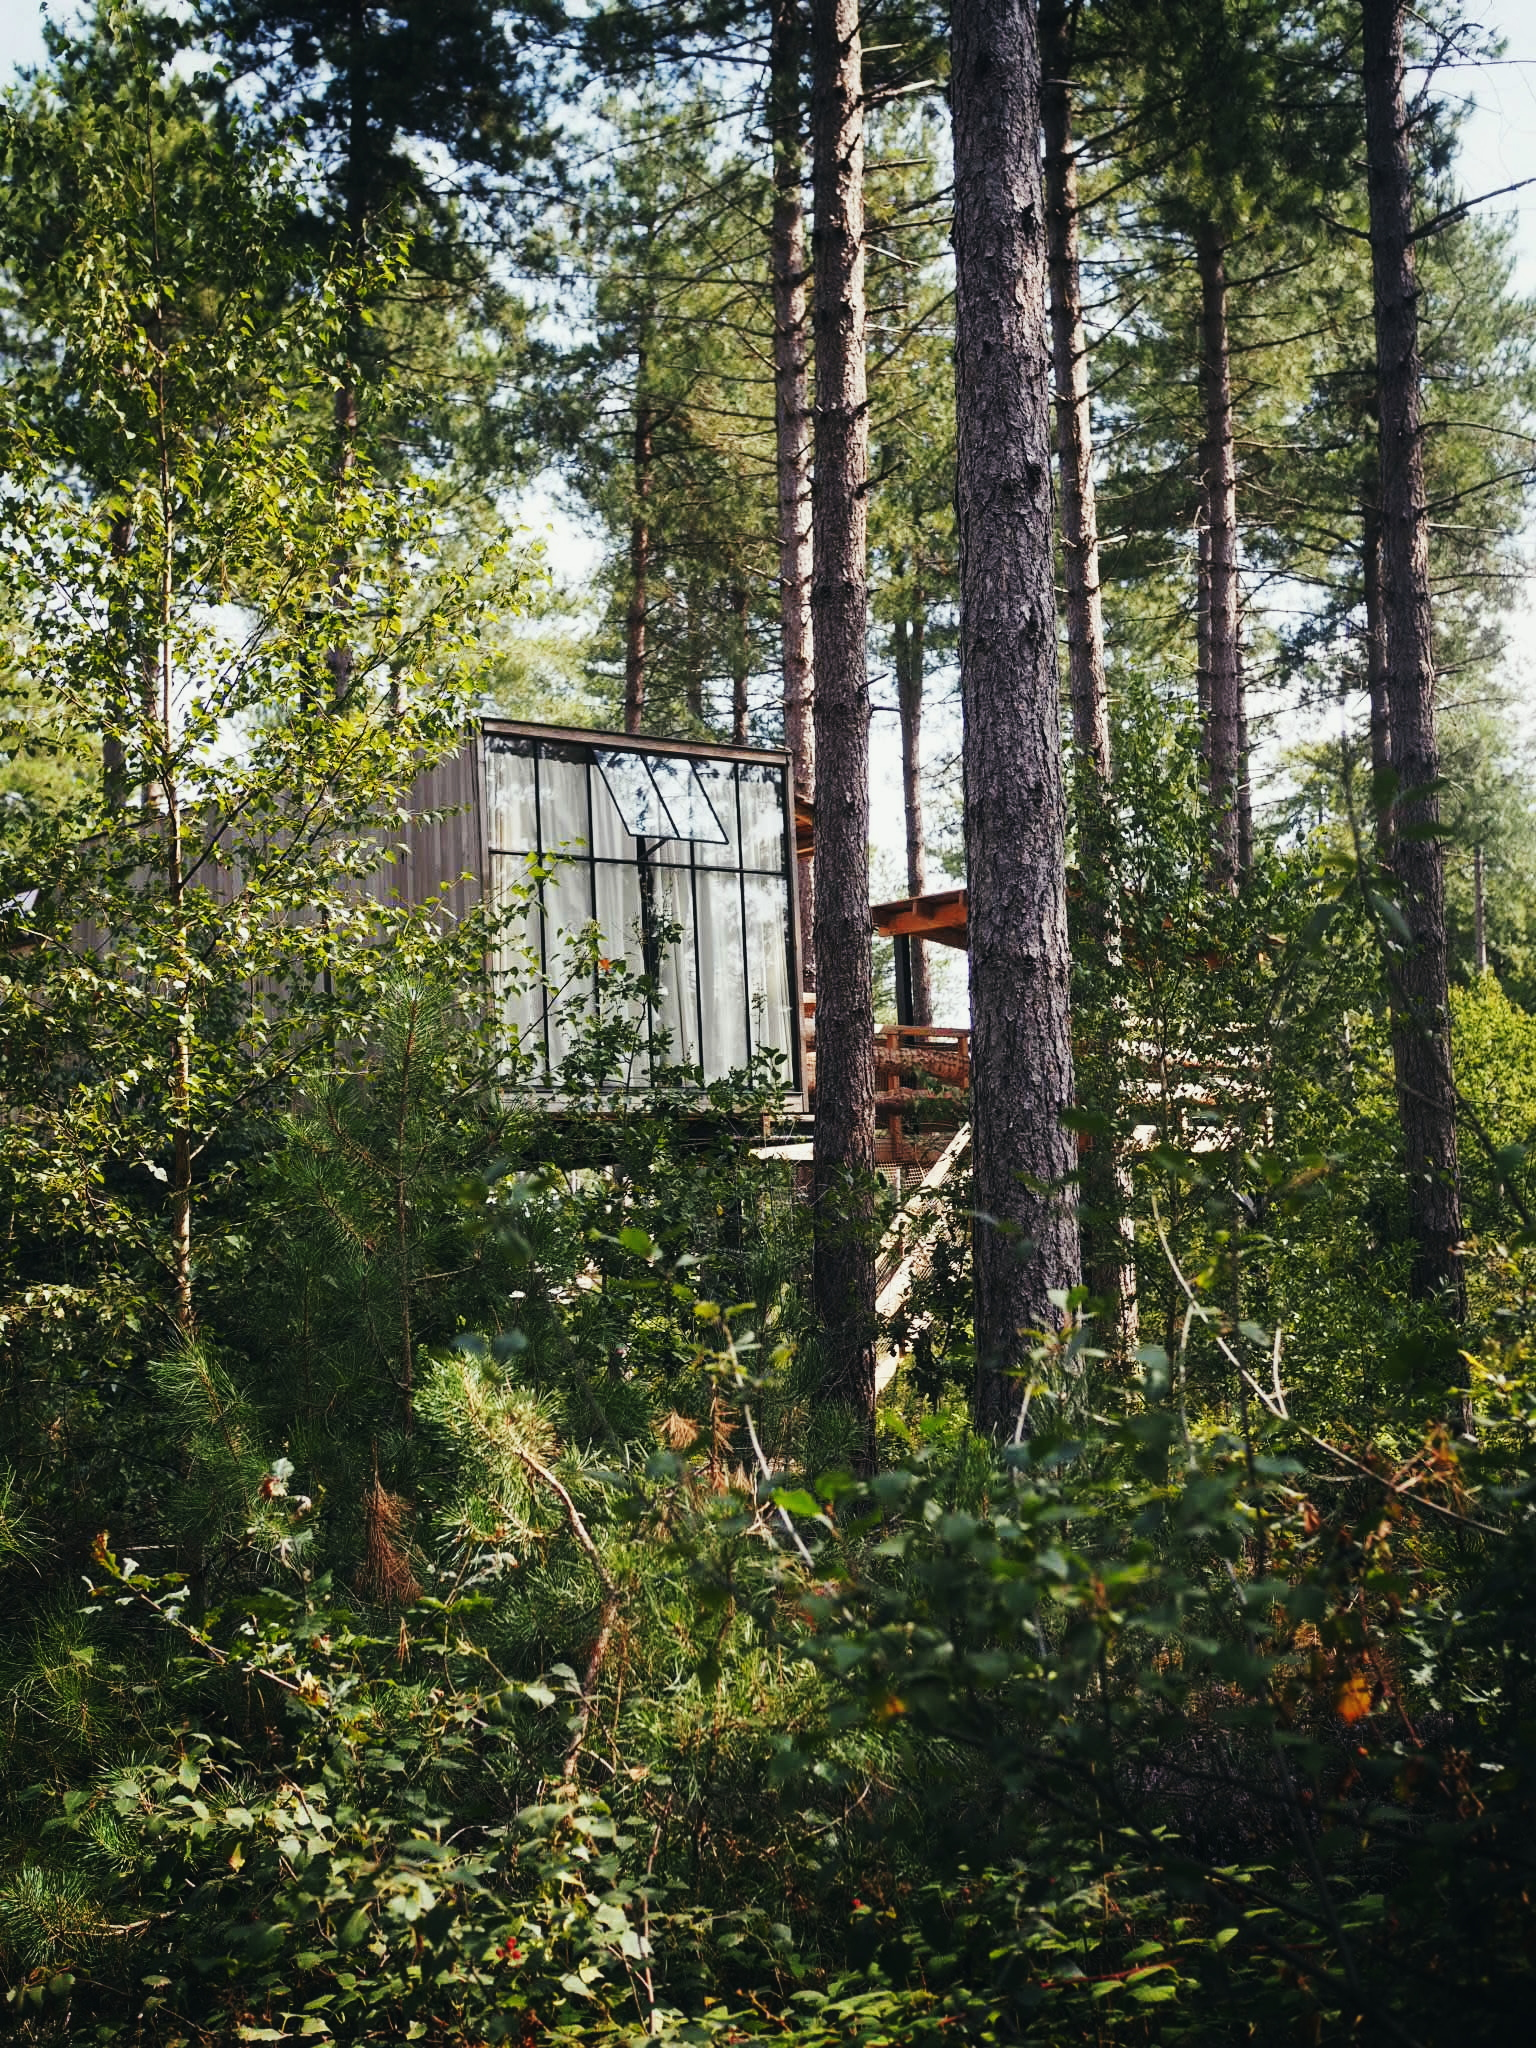 This is the cabin in the trees that we have our eye on for next time!